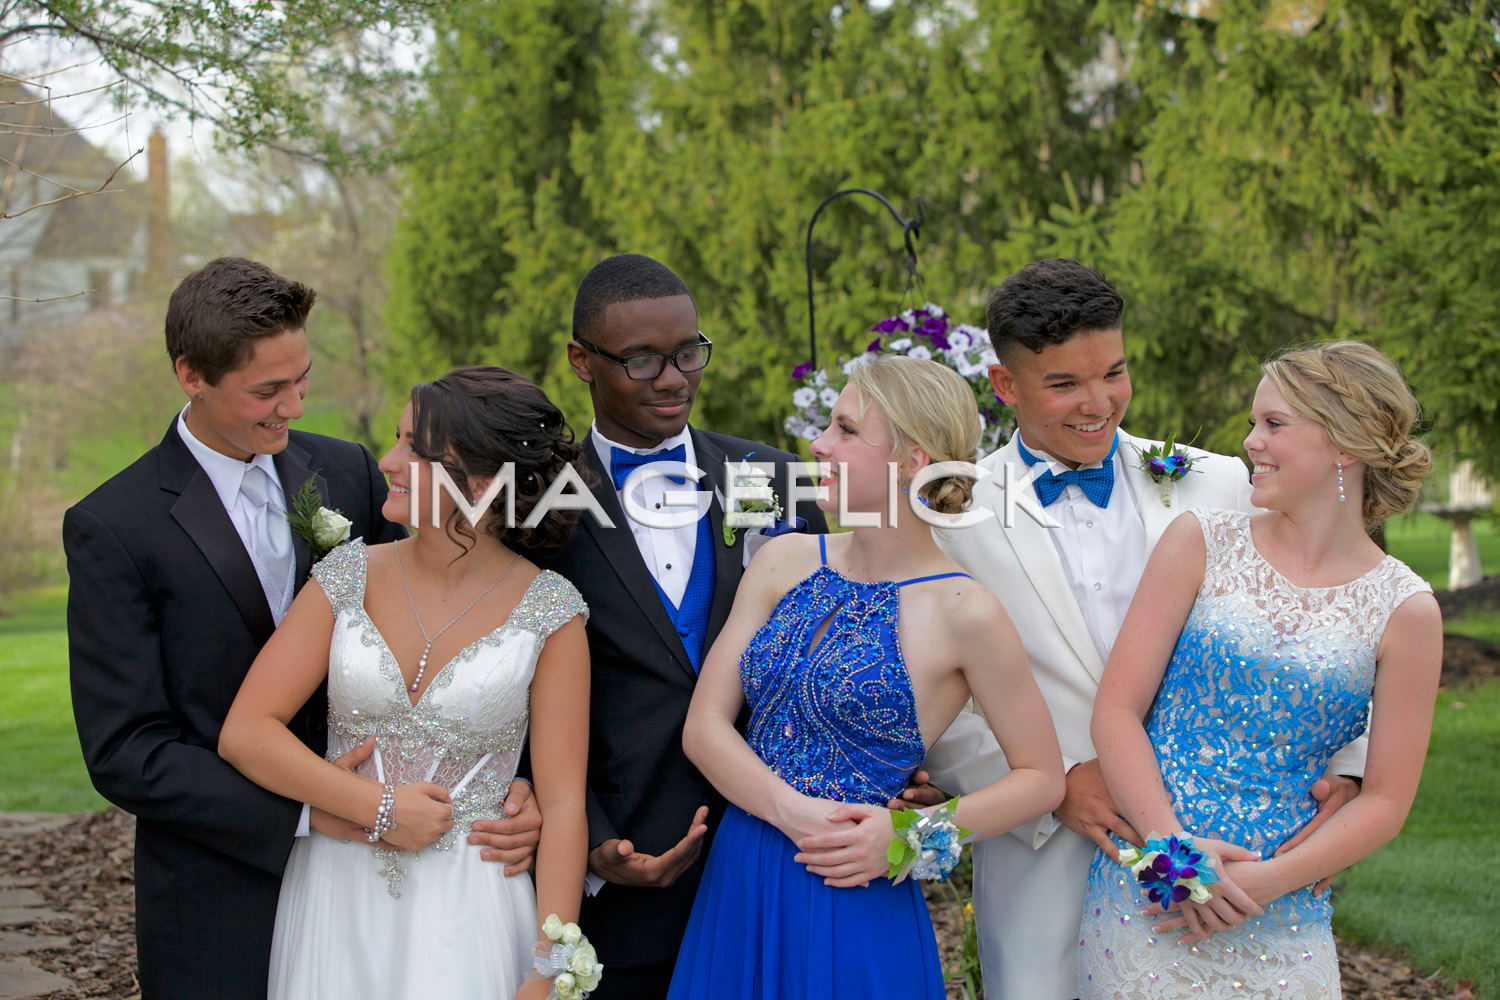 SpecialEvents.Prom1.Web.jpg